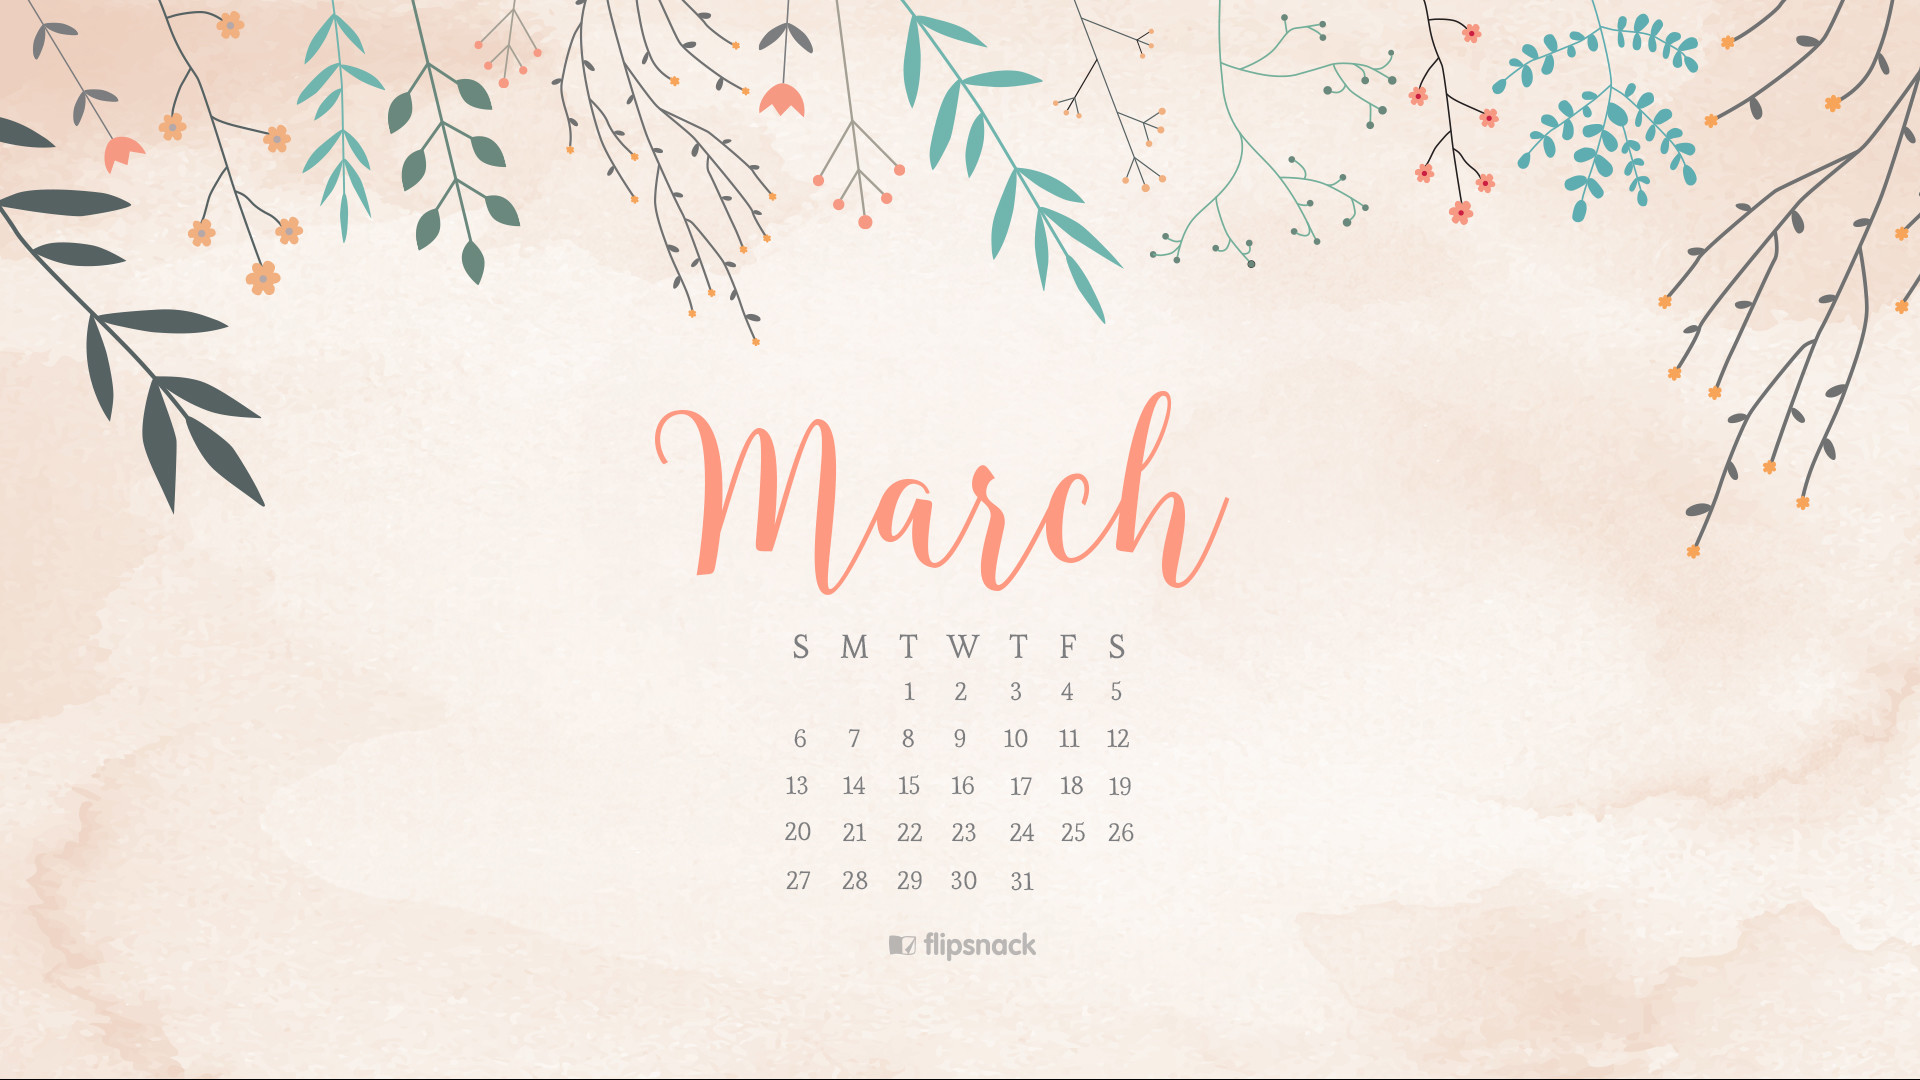 Desktop Wallpaper Calendar 2018 59 images 1920x1080